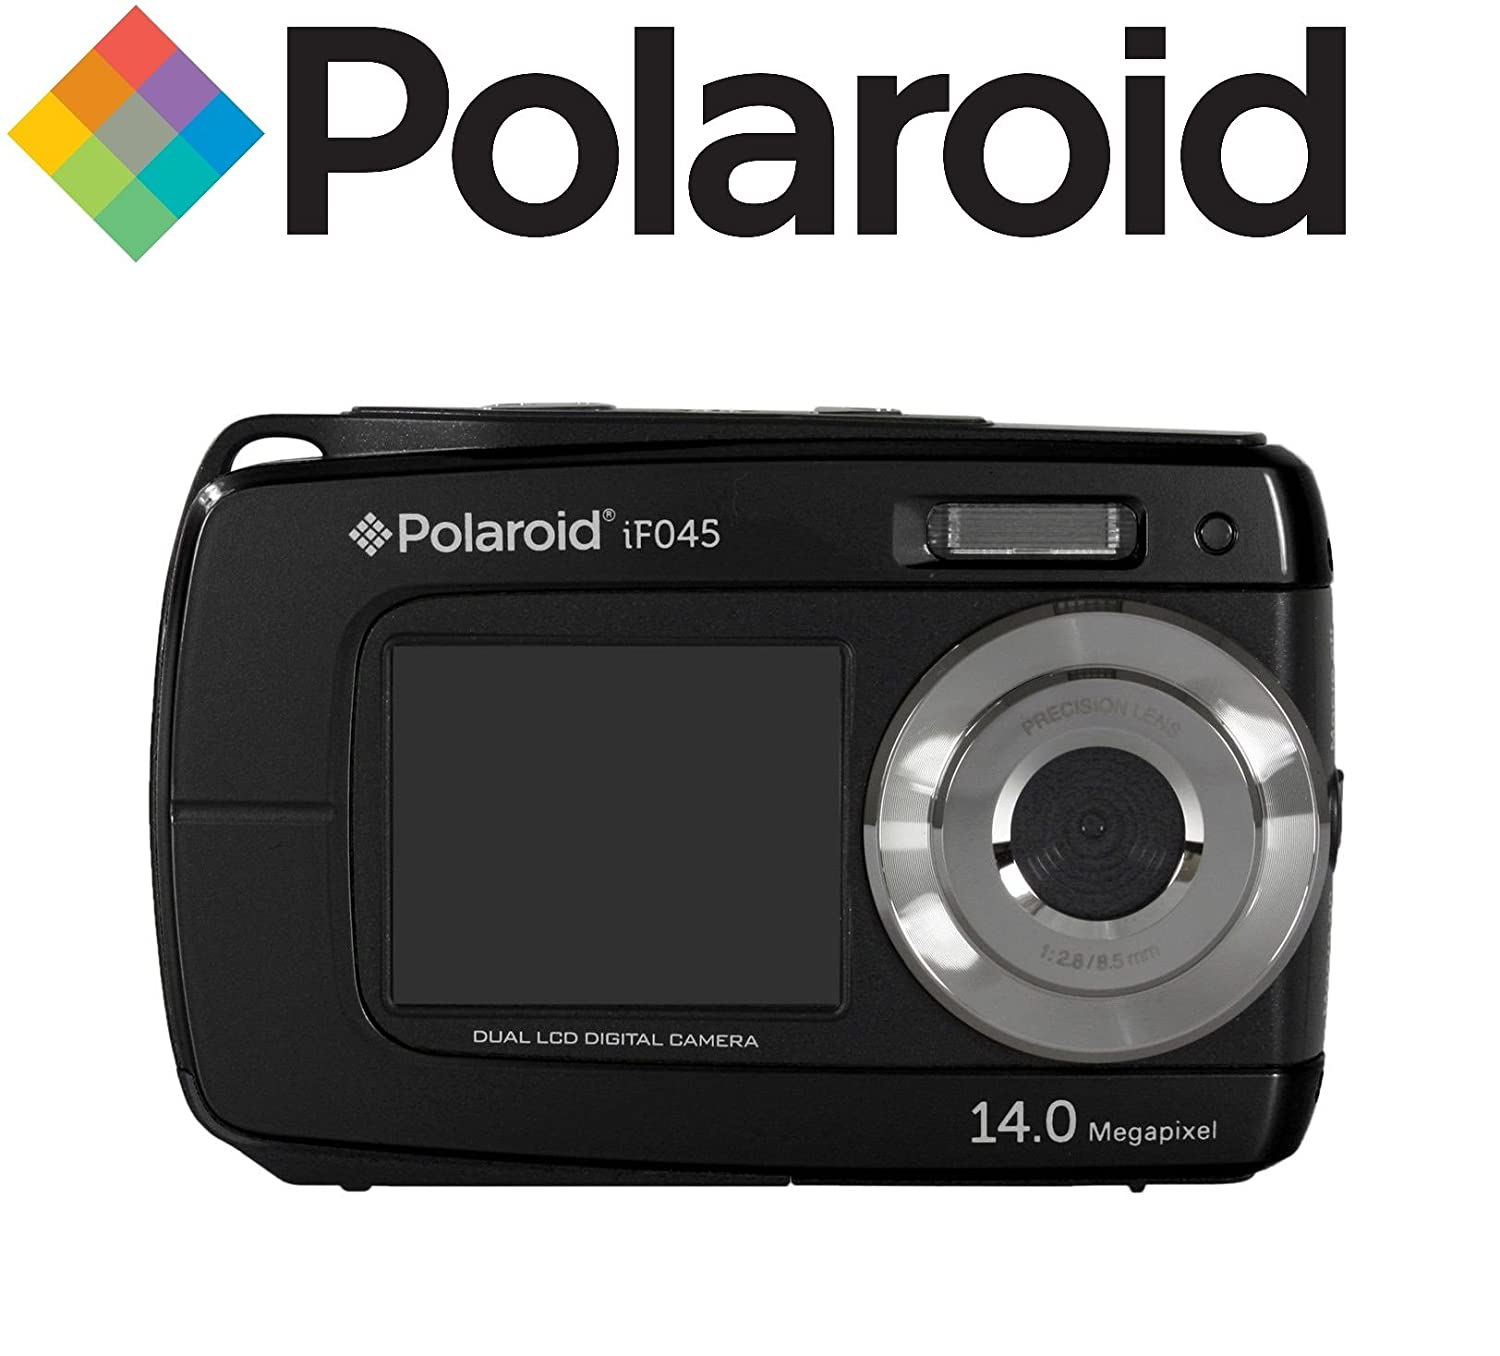 Amazon.com : Polaroid Dual Screen Waterproof Digital Camera with ...